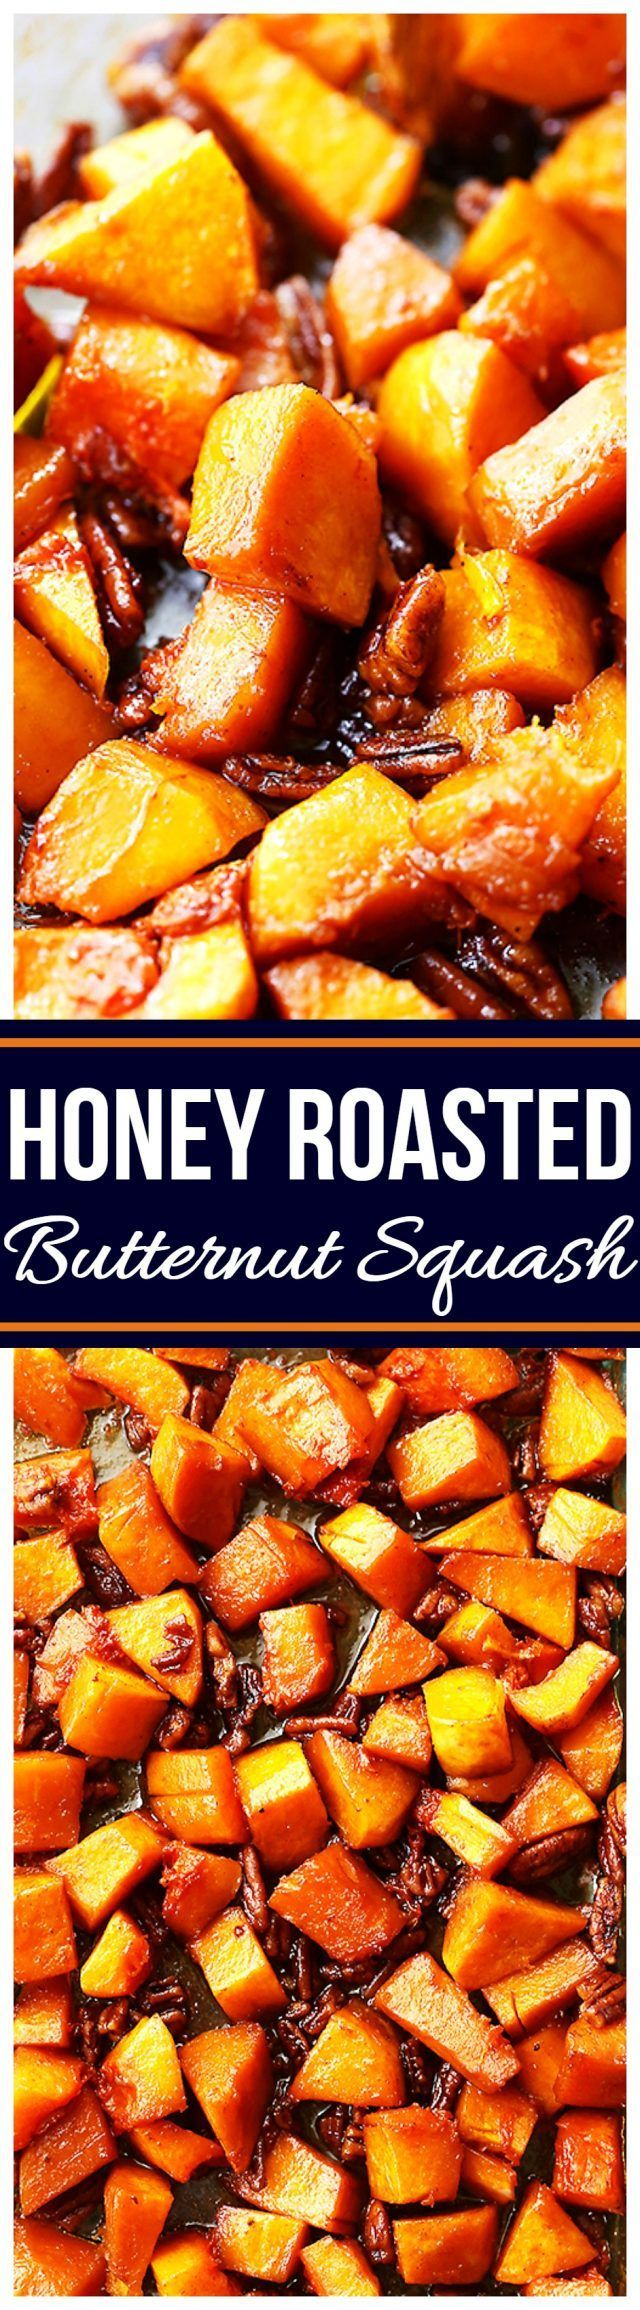 Honey Roasted Butternut Squash - A simple yet delicious side dish with roasted butternut squash and crunchy pecans combined with cinnamon and honey. Perfect for holidays, and weeknights, too!!